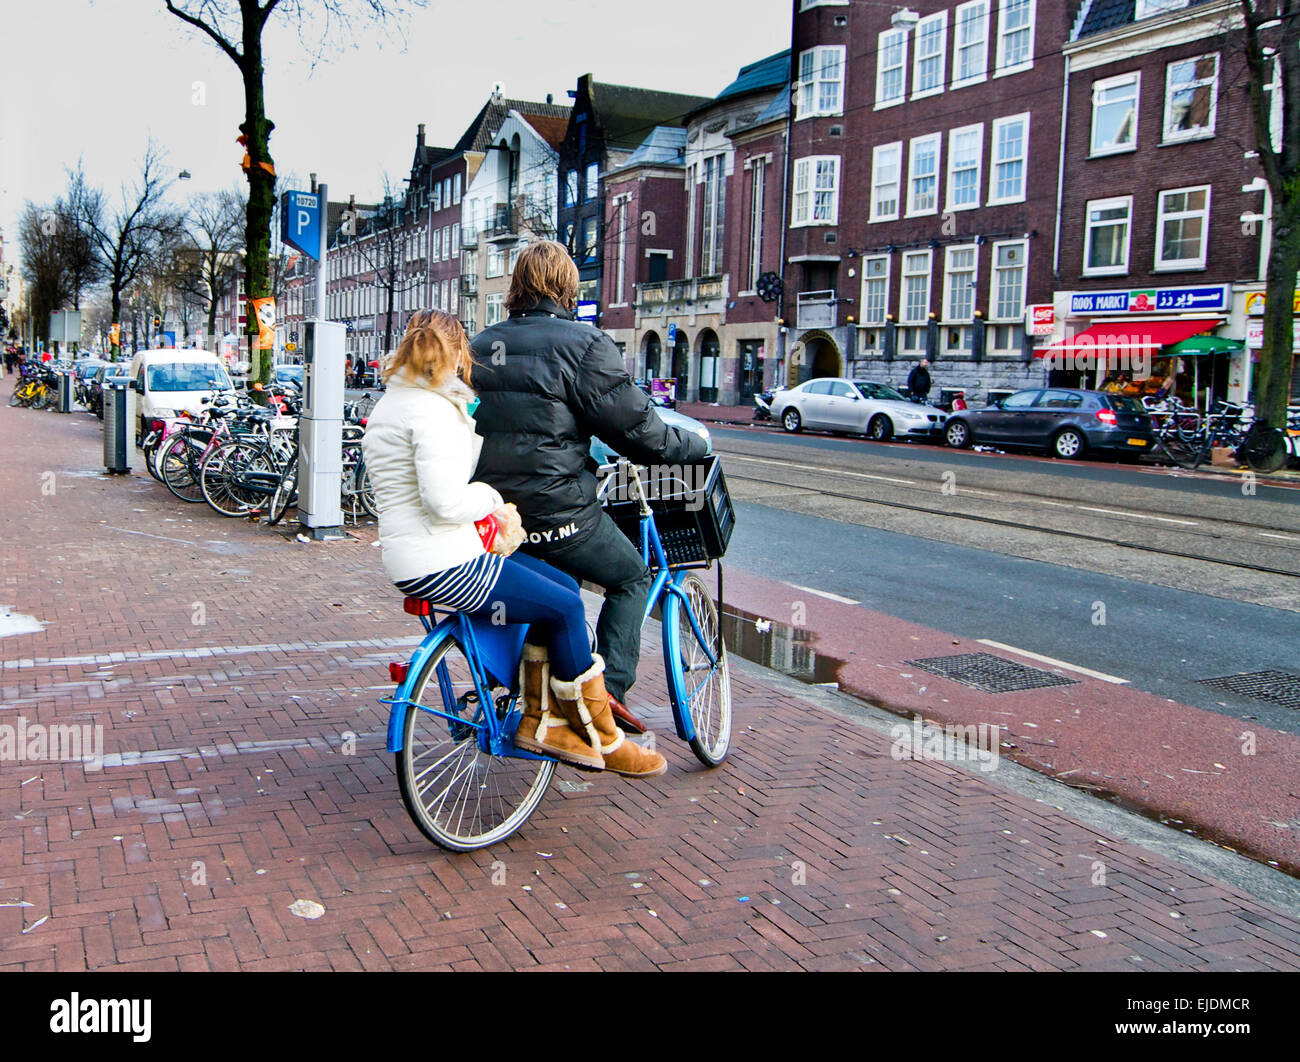 Young girl rides sidesaddle on the back of a boy's blue bicycle on the streets of Amsterdam in the Netherlands. - Stock Image